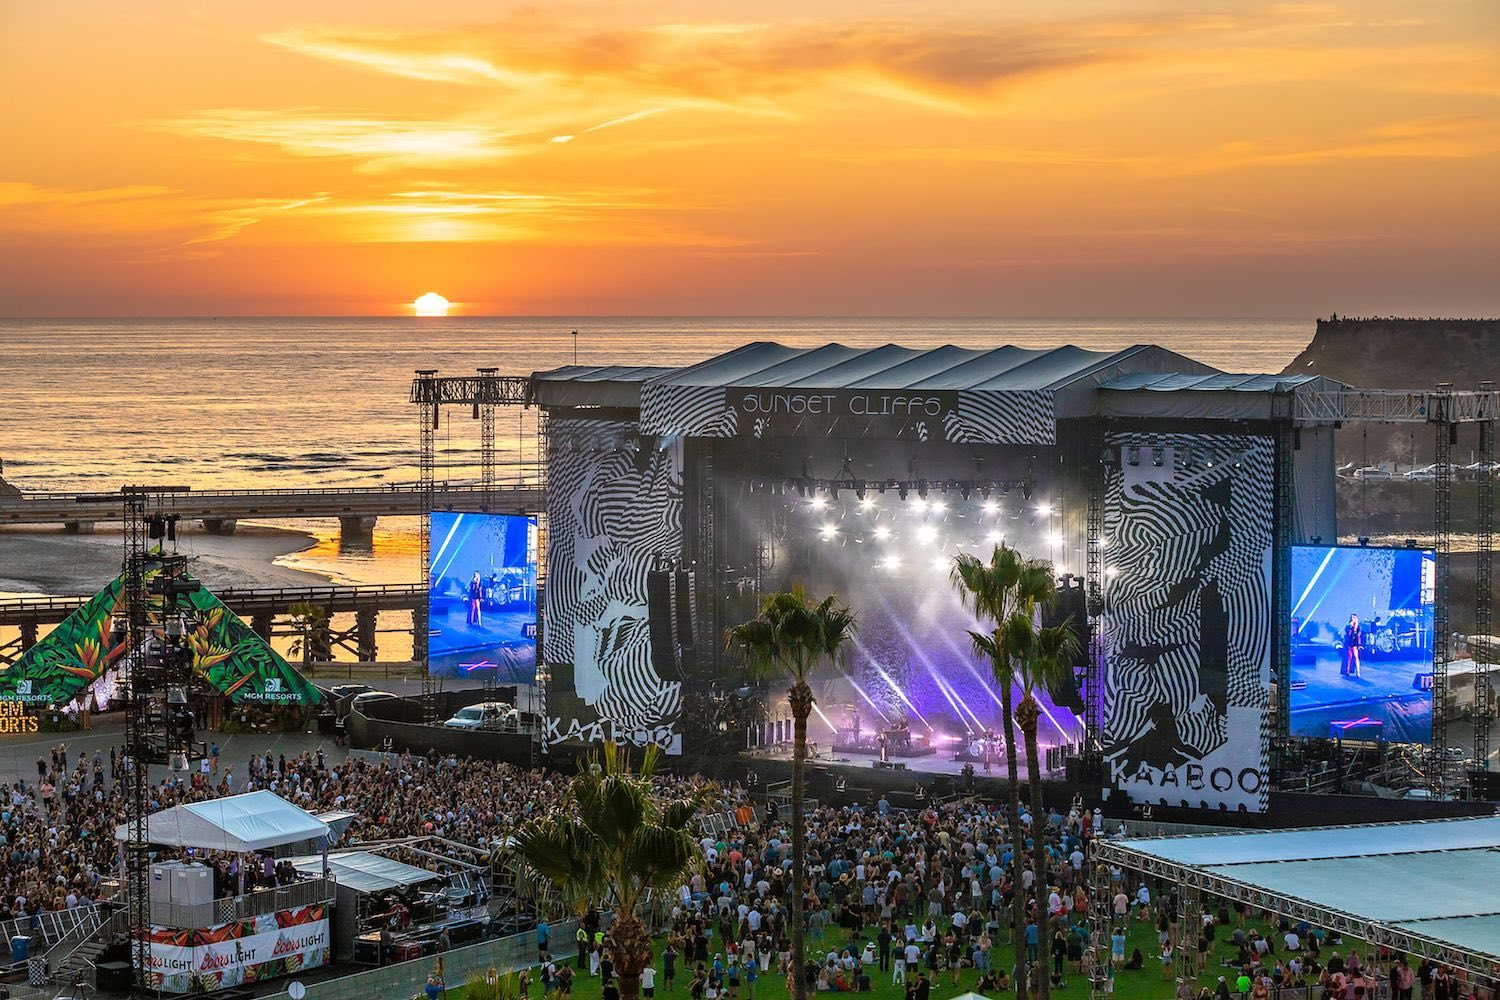 Kaaboo Del Mar - Best USA Music Festivals 2020